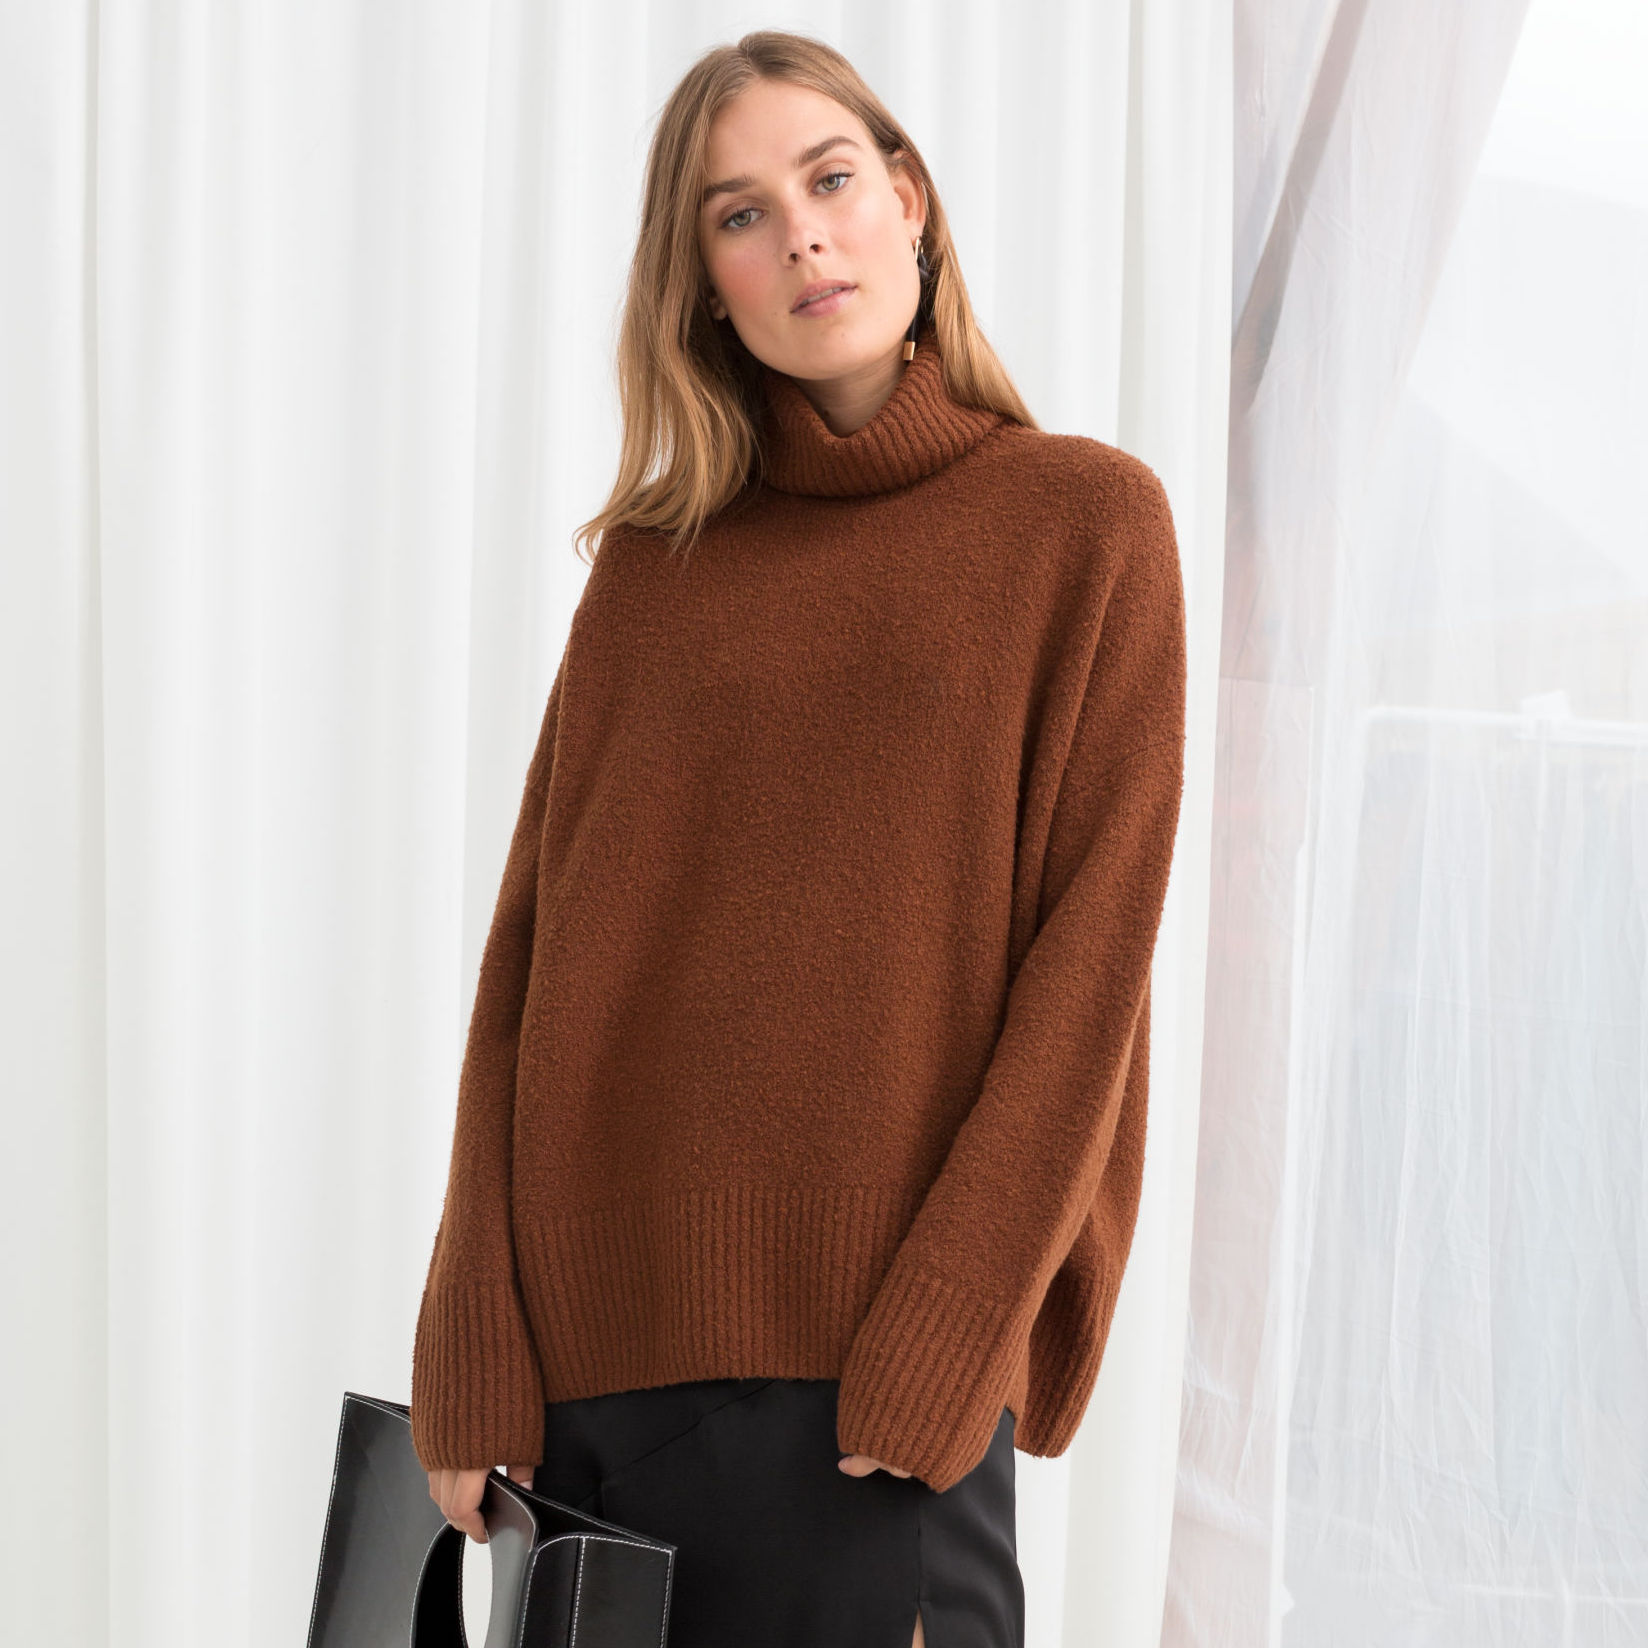 ALL-SORTS-OF-AND-OTHER-STORIES-TURTLENECK-SWEATER-BROWN